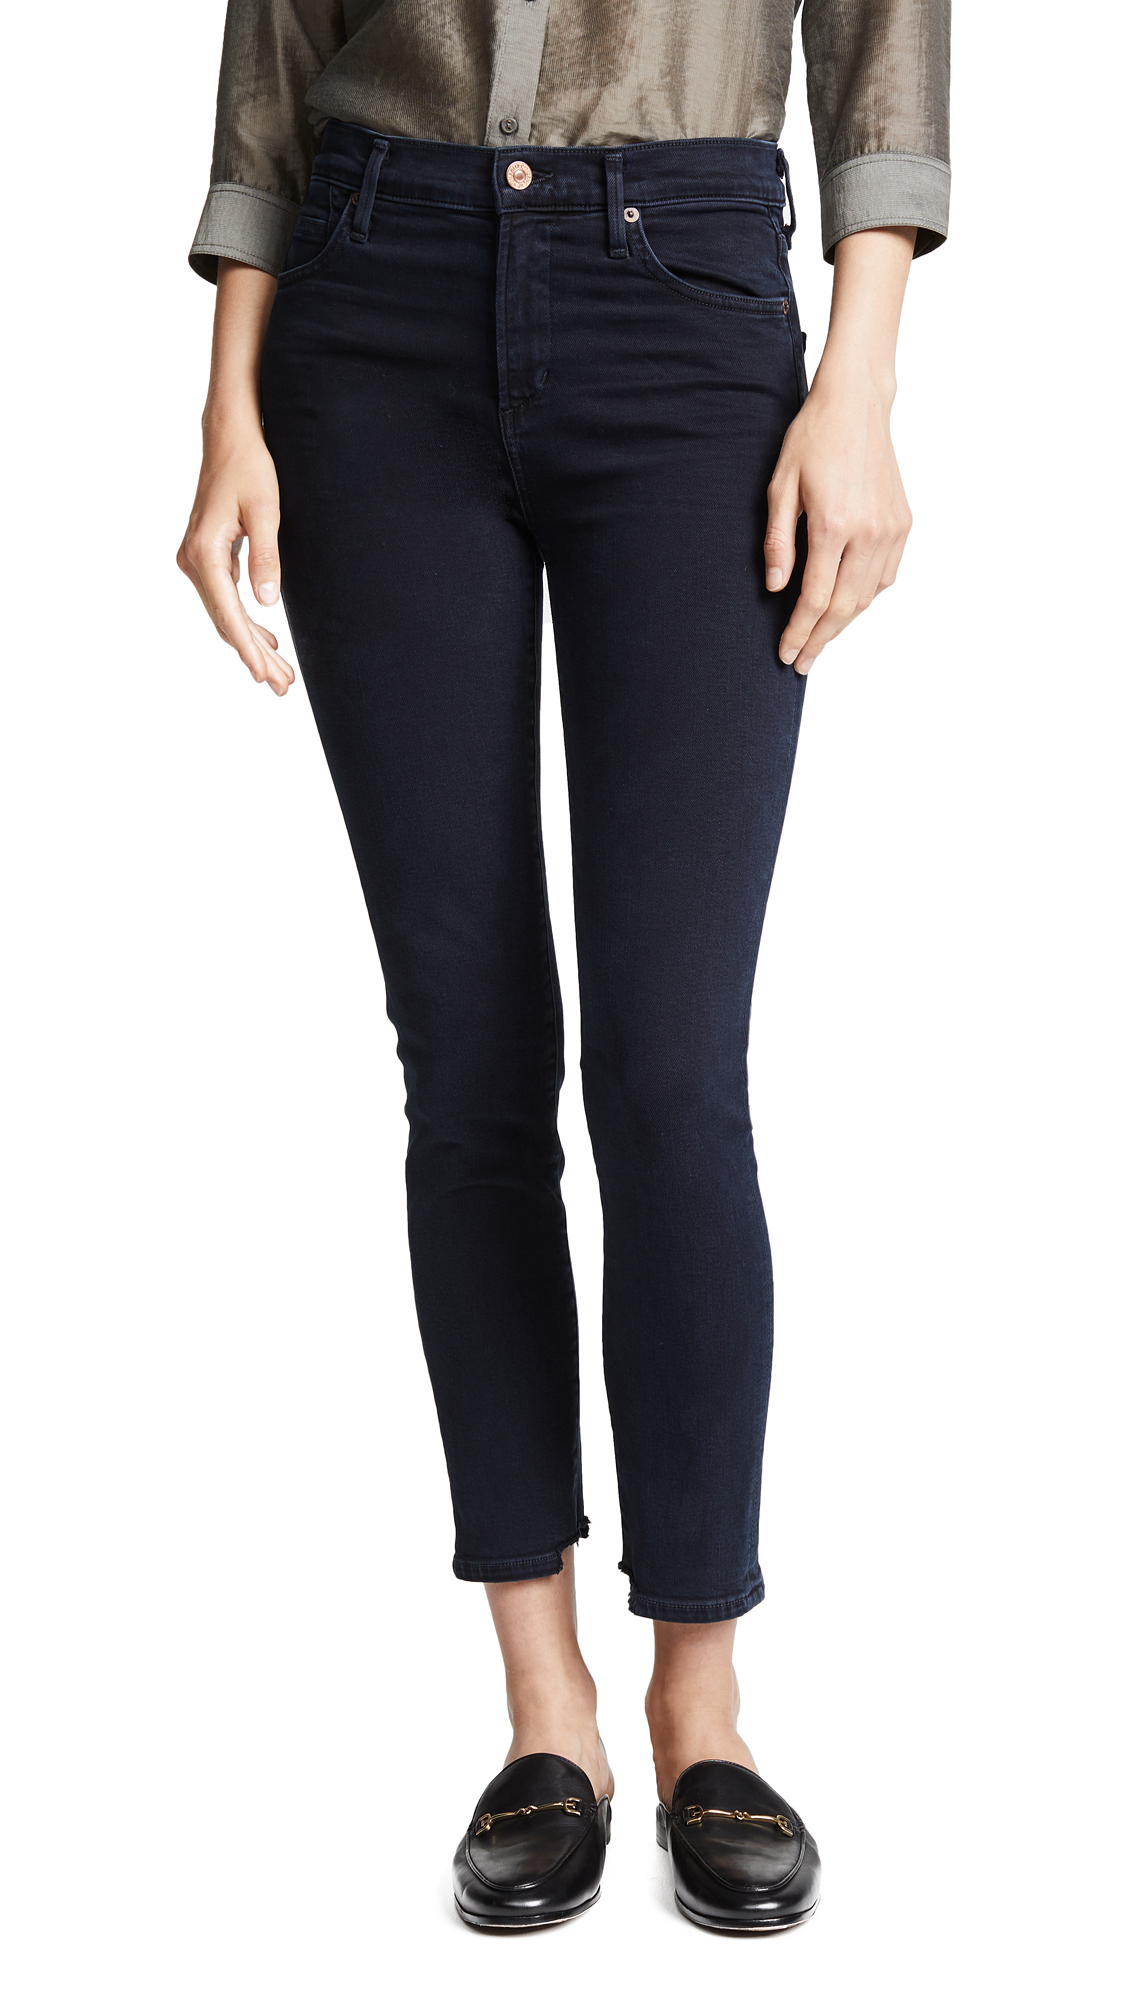 Citizens of Humanity Rocket Crop High Rise Skinny Jeans - Blue Print